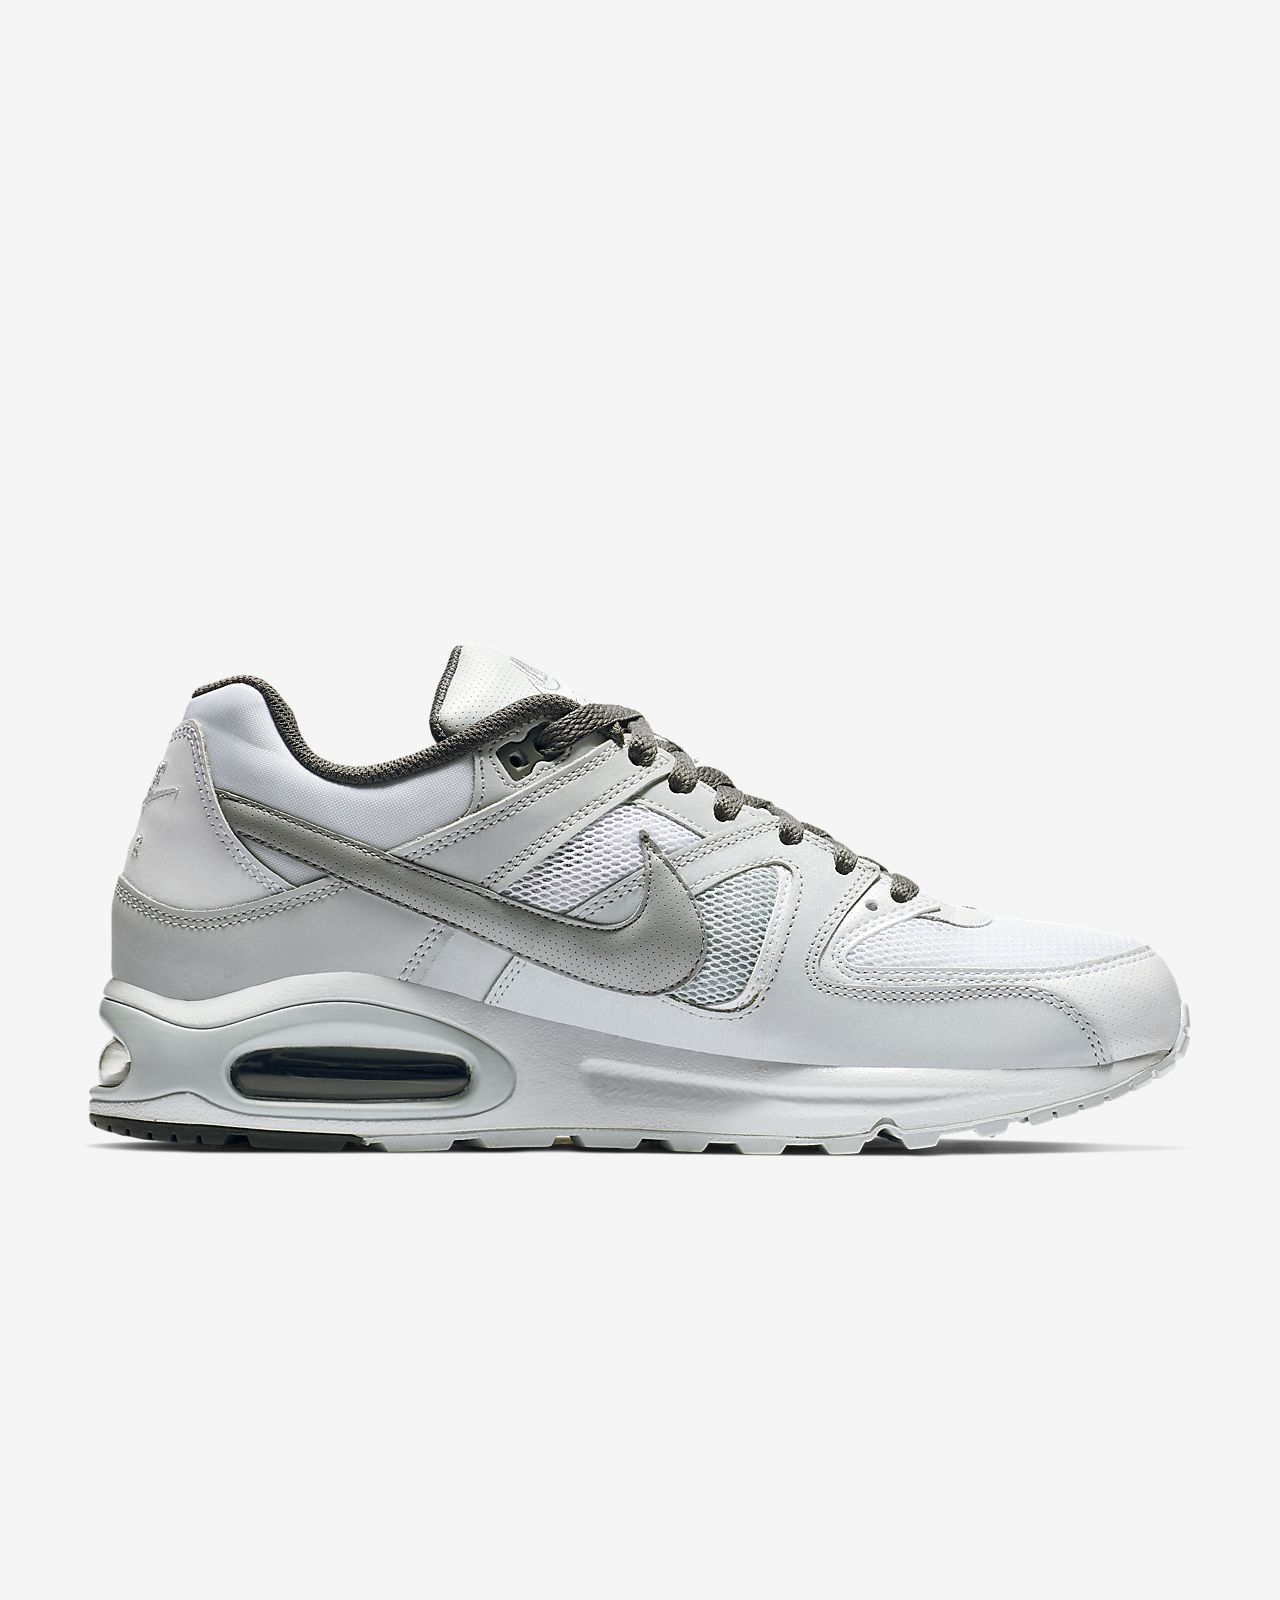 outlet store 8664e 46293 ... Nike Air Max Command – Chaussure pour Homme